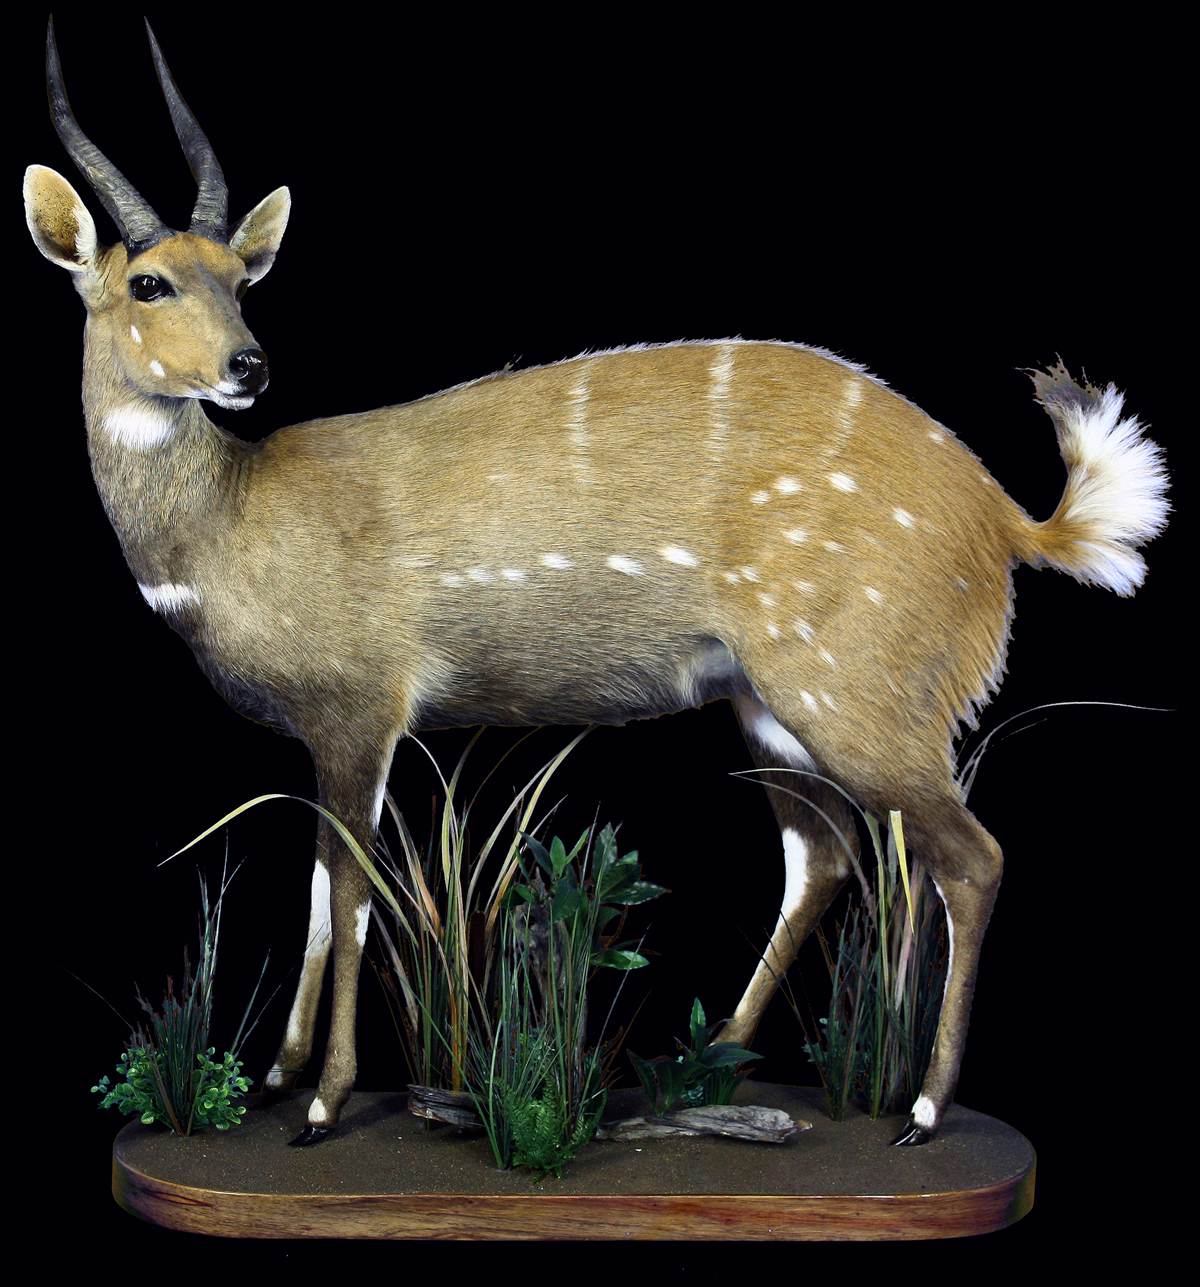 Bushbuck-Full-mount-aa036-copy.JPG